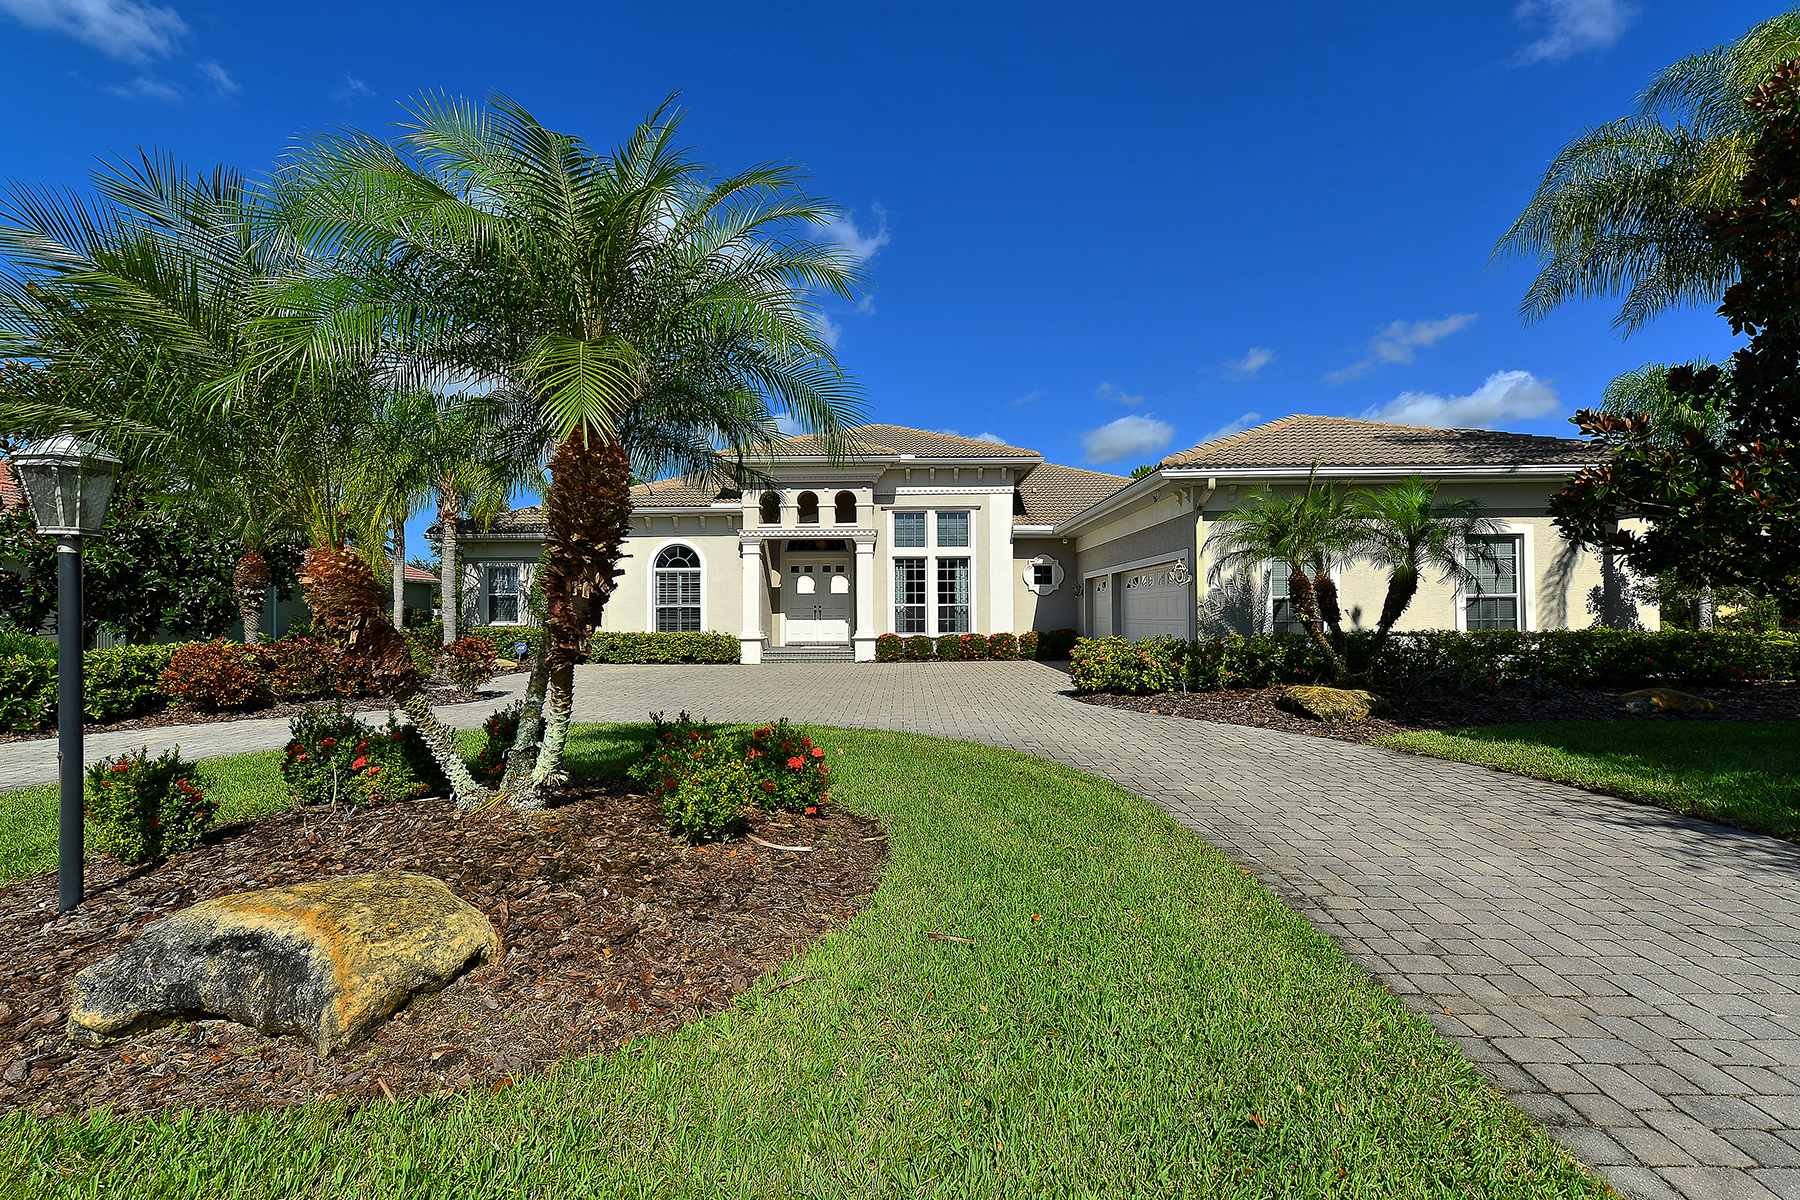 Single Family Home for Sale at LAKEWOOD RANCH - TEAL CREEK 12807 Forsgate Pl Lakewood Ranch, Florida 34202 United States